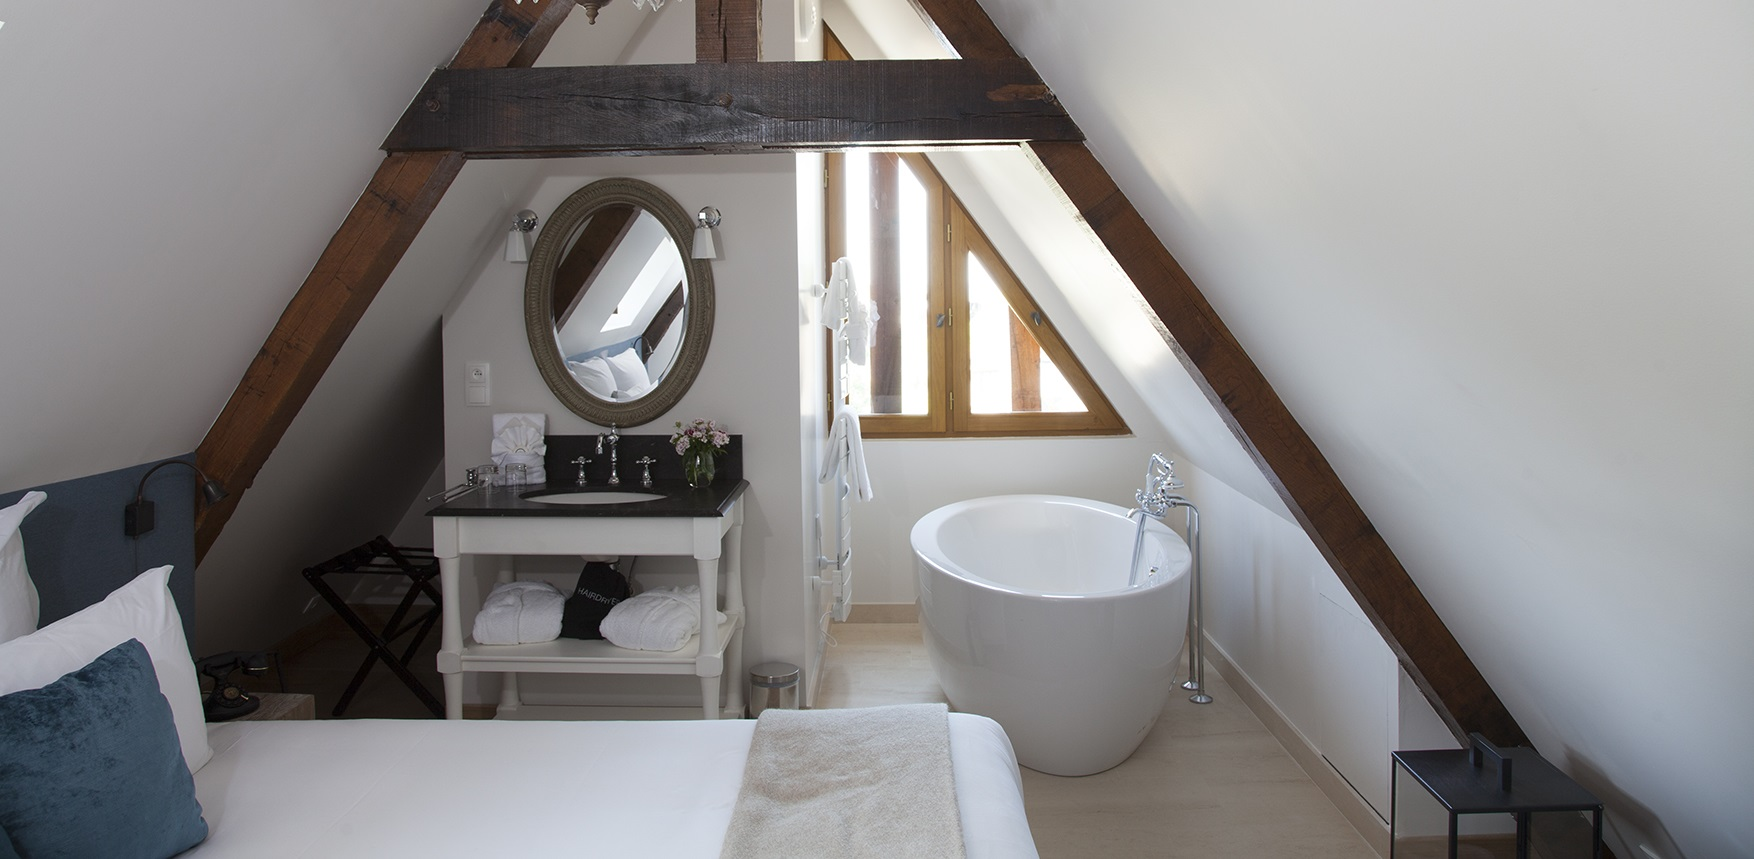 Best chambre dhotes luxe normandie images yourmentor for Chambre avec jacuzzi privatif normandie